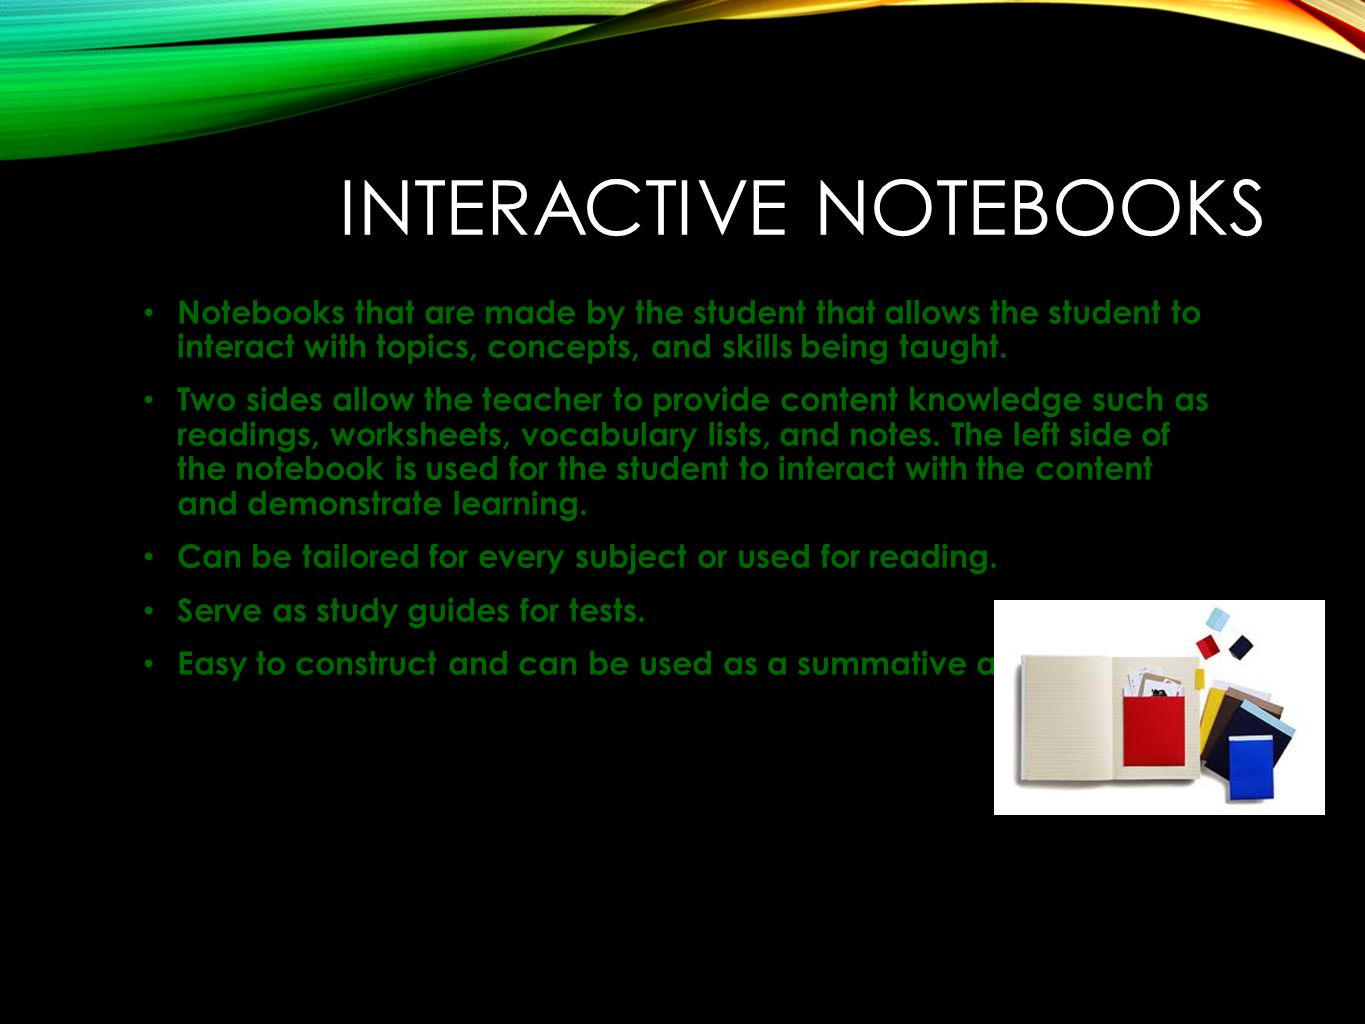 INTERACTIVE NOTEBOOKS Notebooks that are made by the student that allows the student to interact with topics, concepts, and skills being taught.